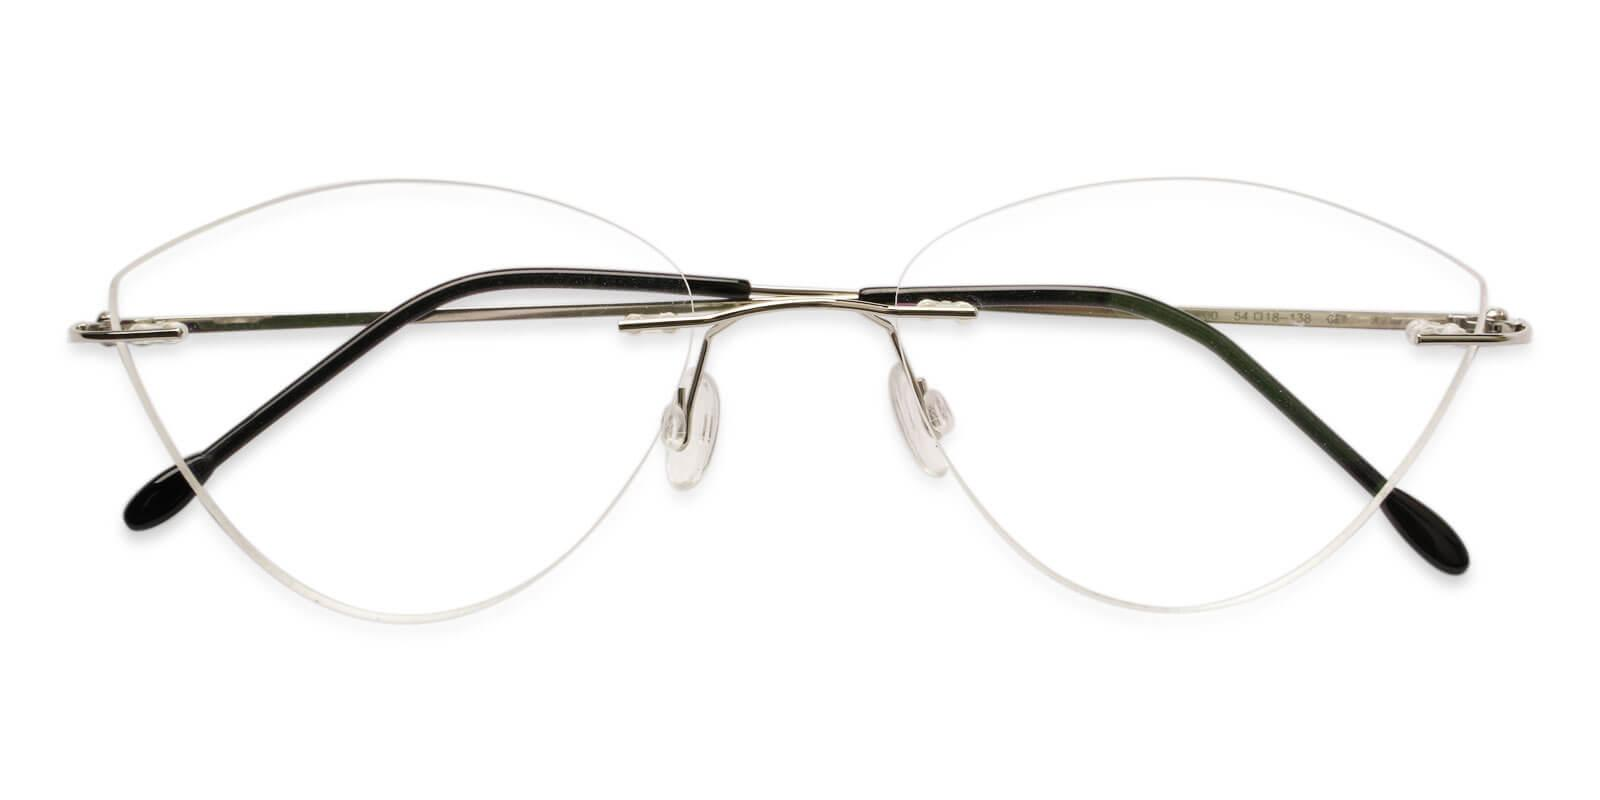 Huguenot Silver Metal Eyeglasses , NosePads Frames from ABBE Glasses